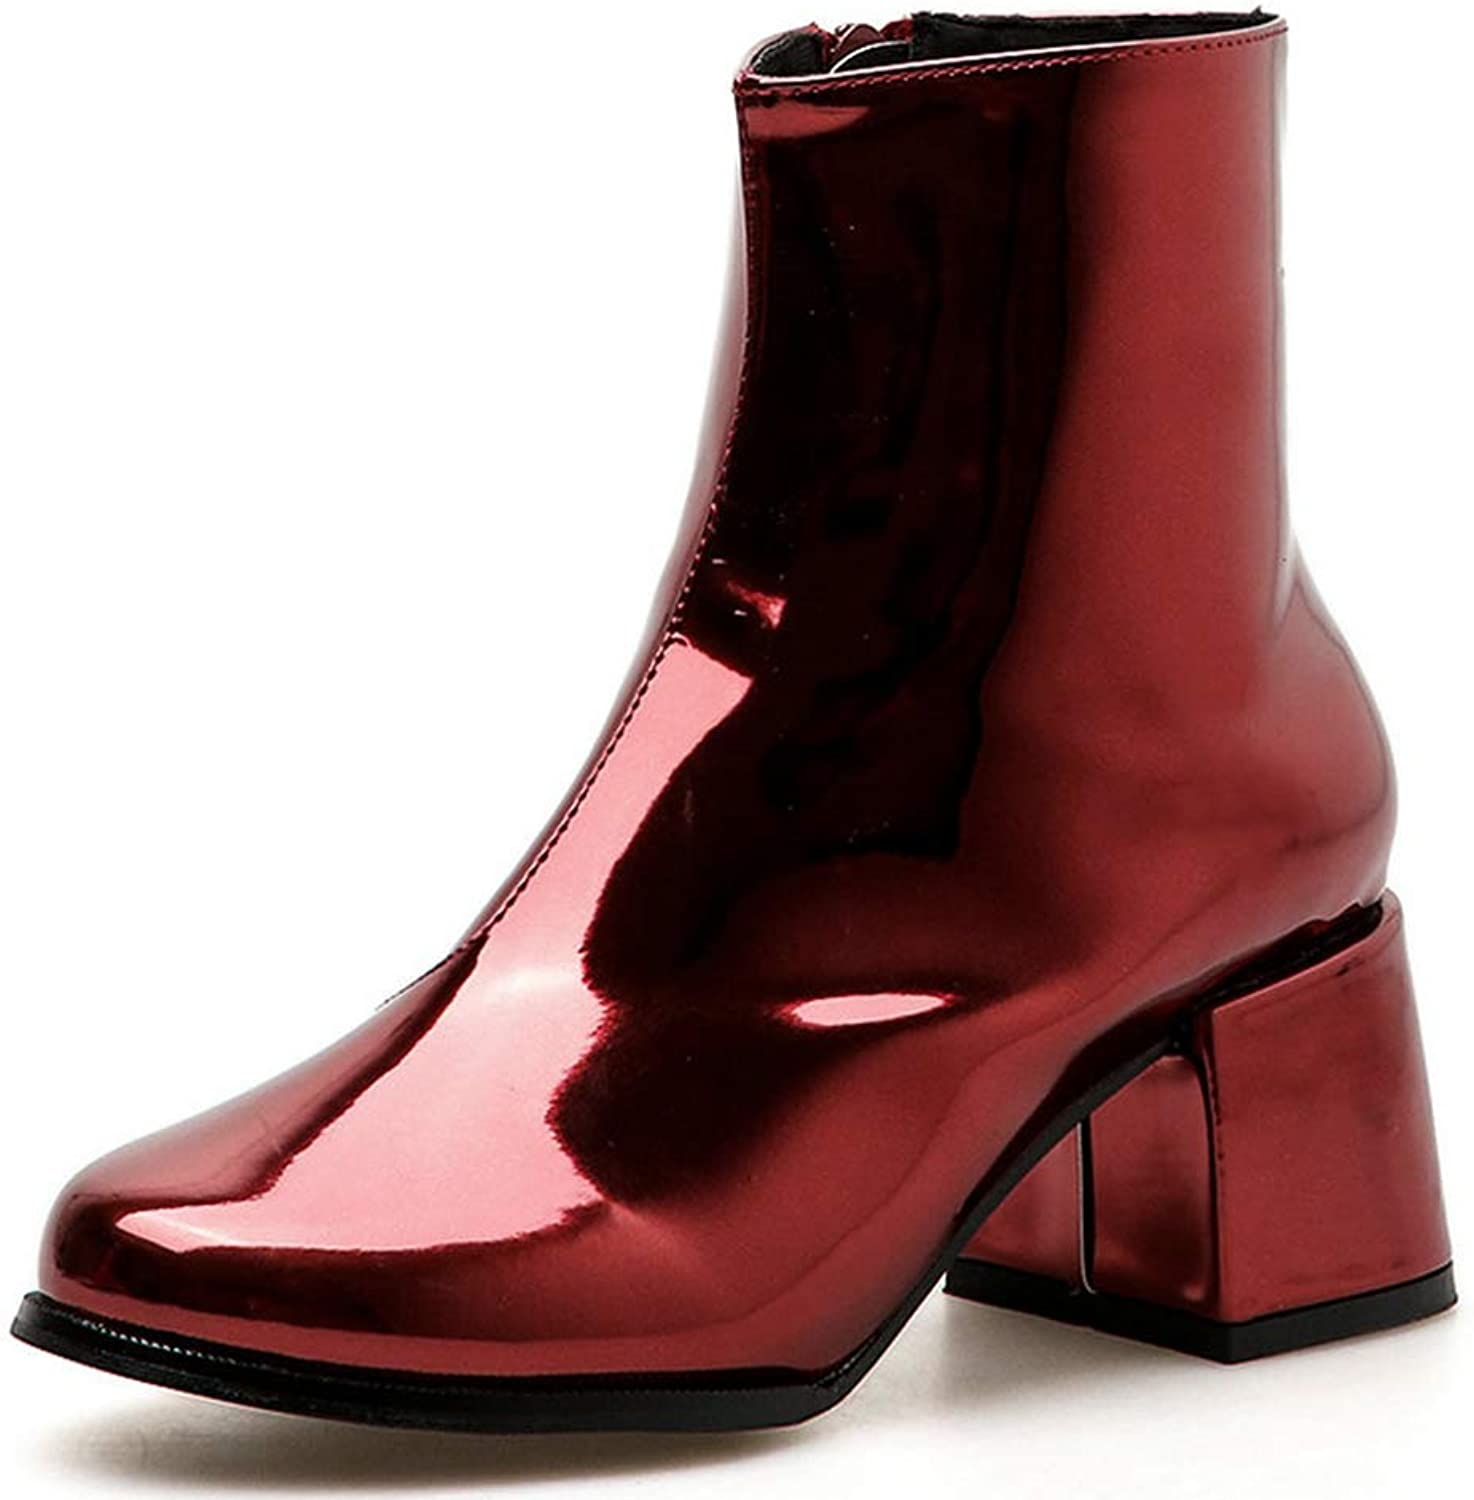 Women Winter Ankle Boots Patent Leather Sexy Round Toe High Heels Short Square Heel Martin Booties